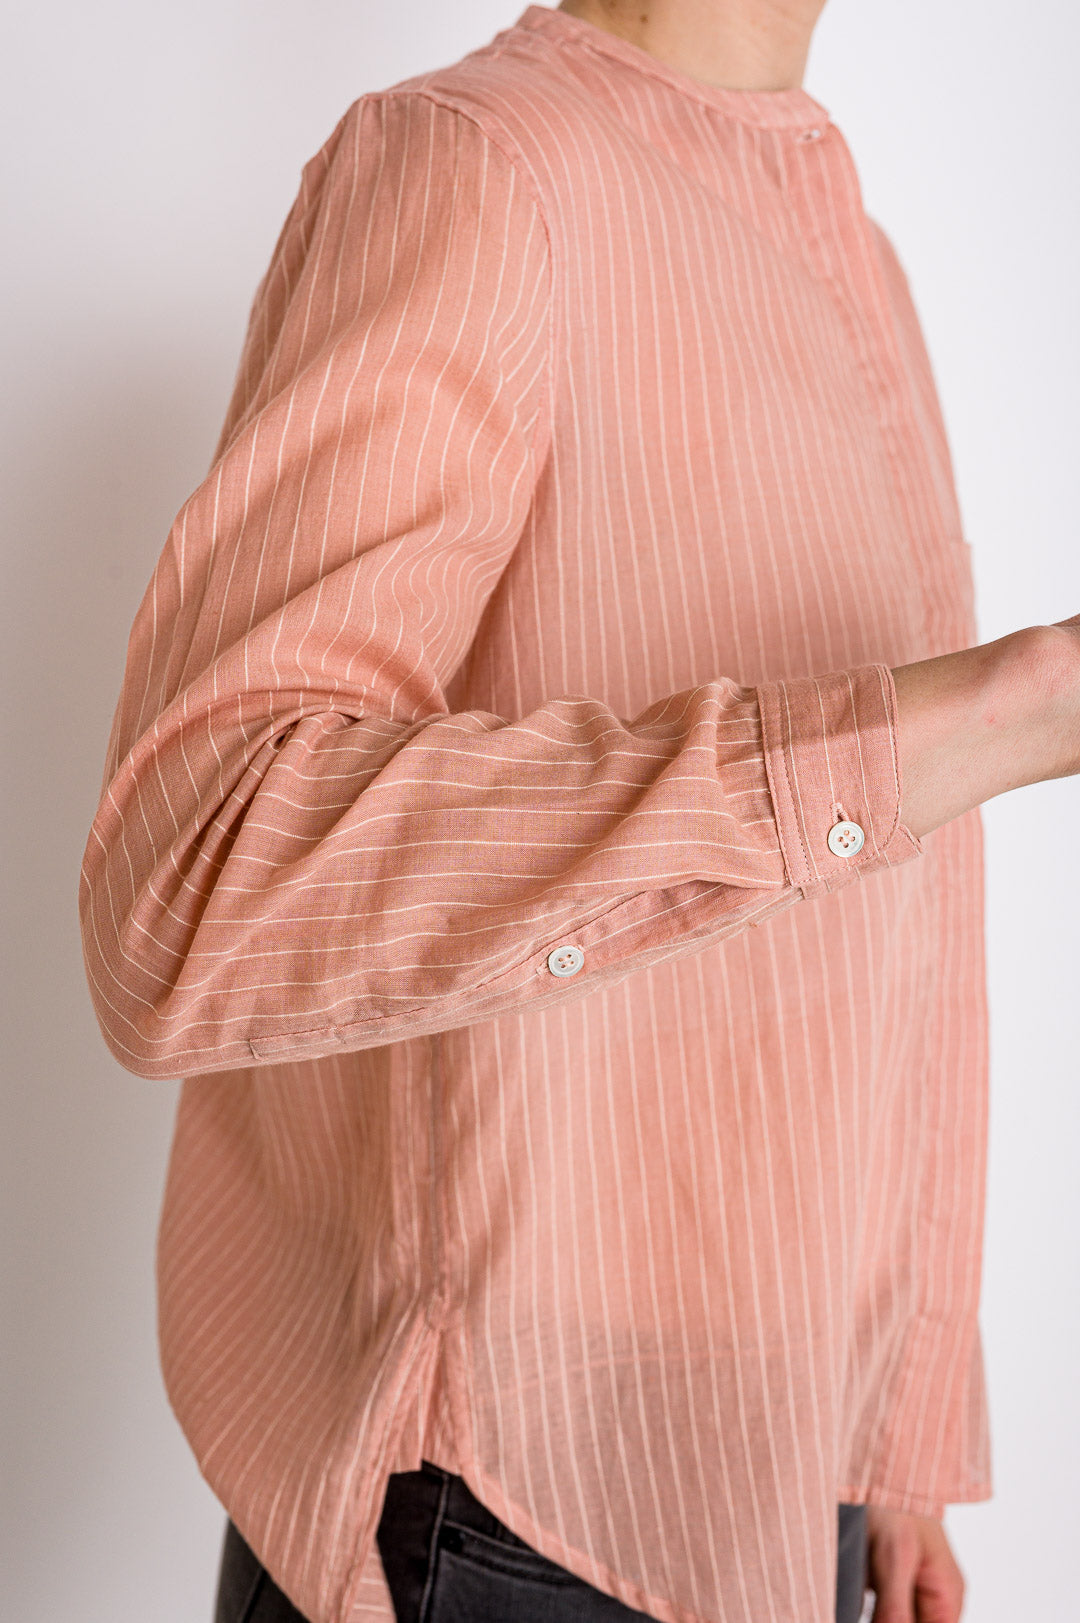 Moismont // Bluse No. 511 Stripes Pink